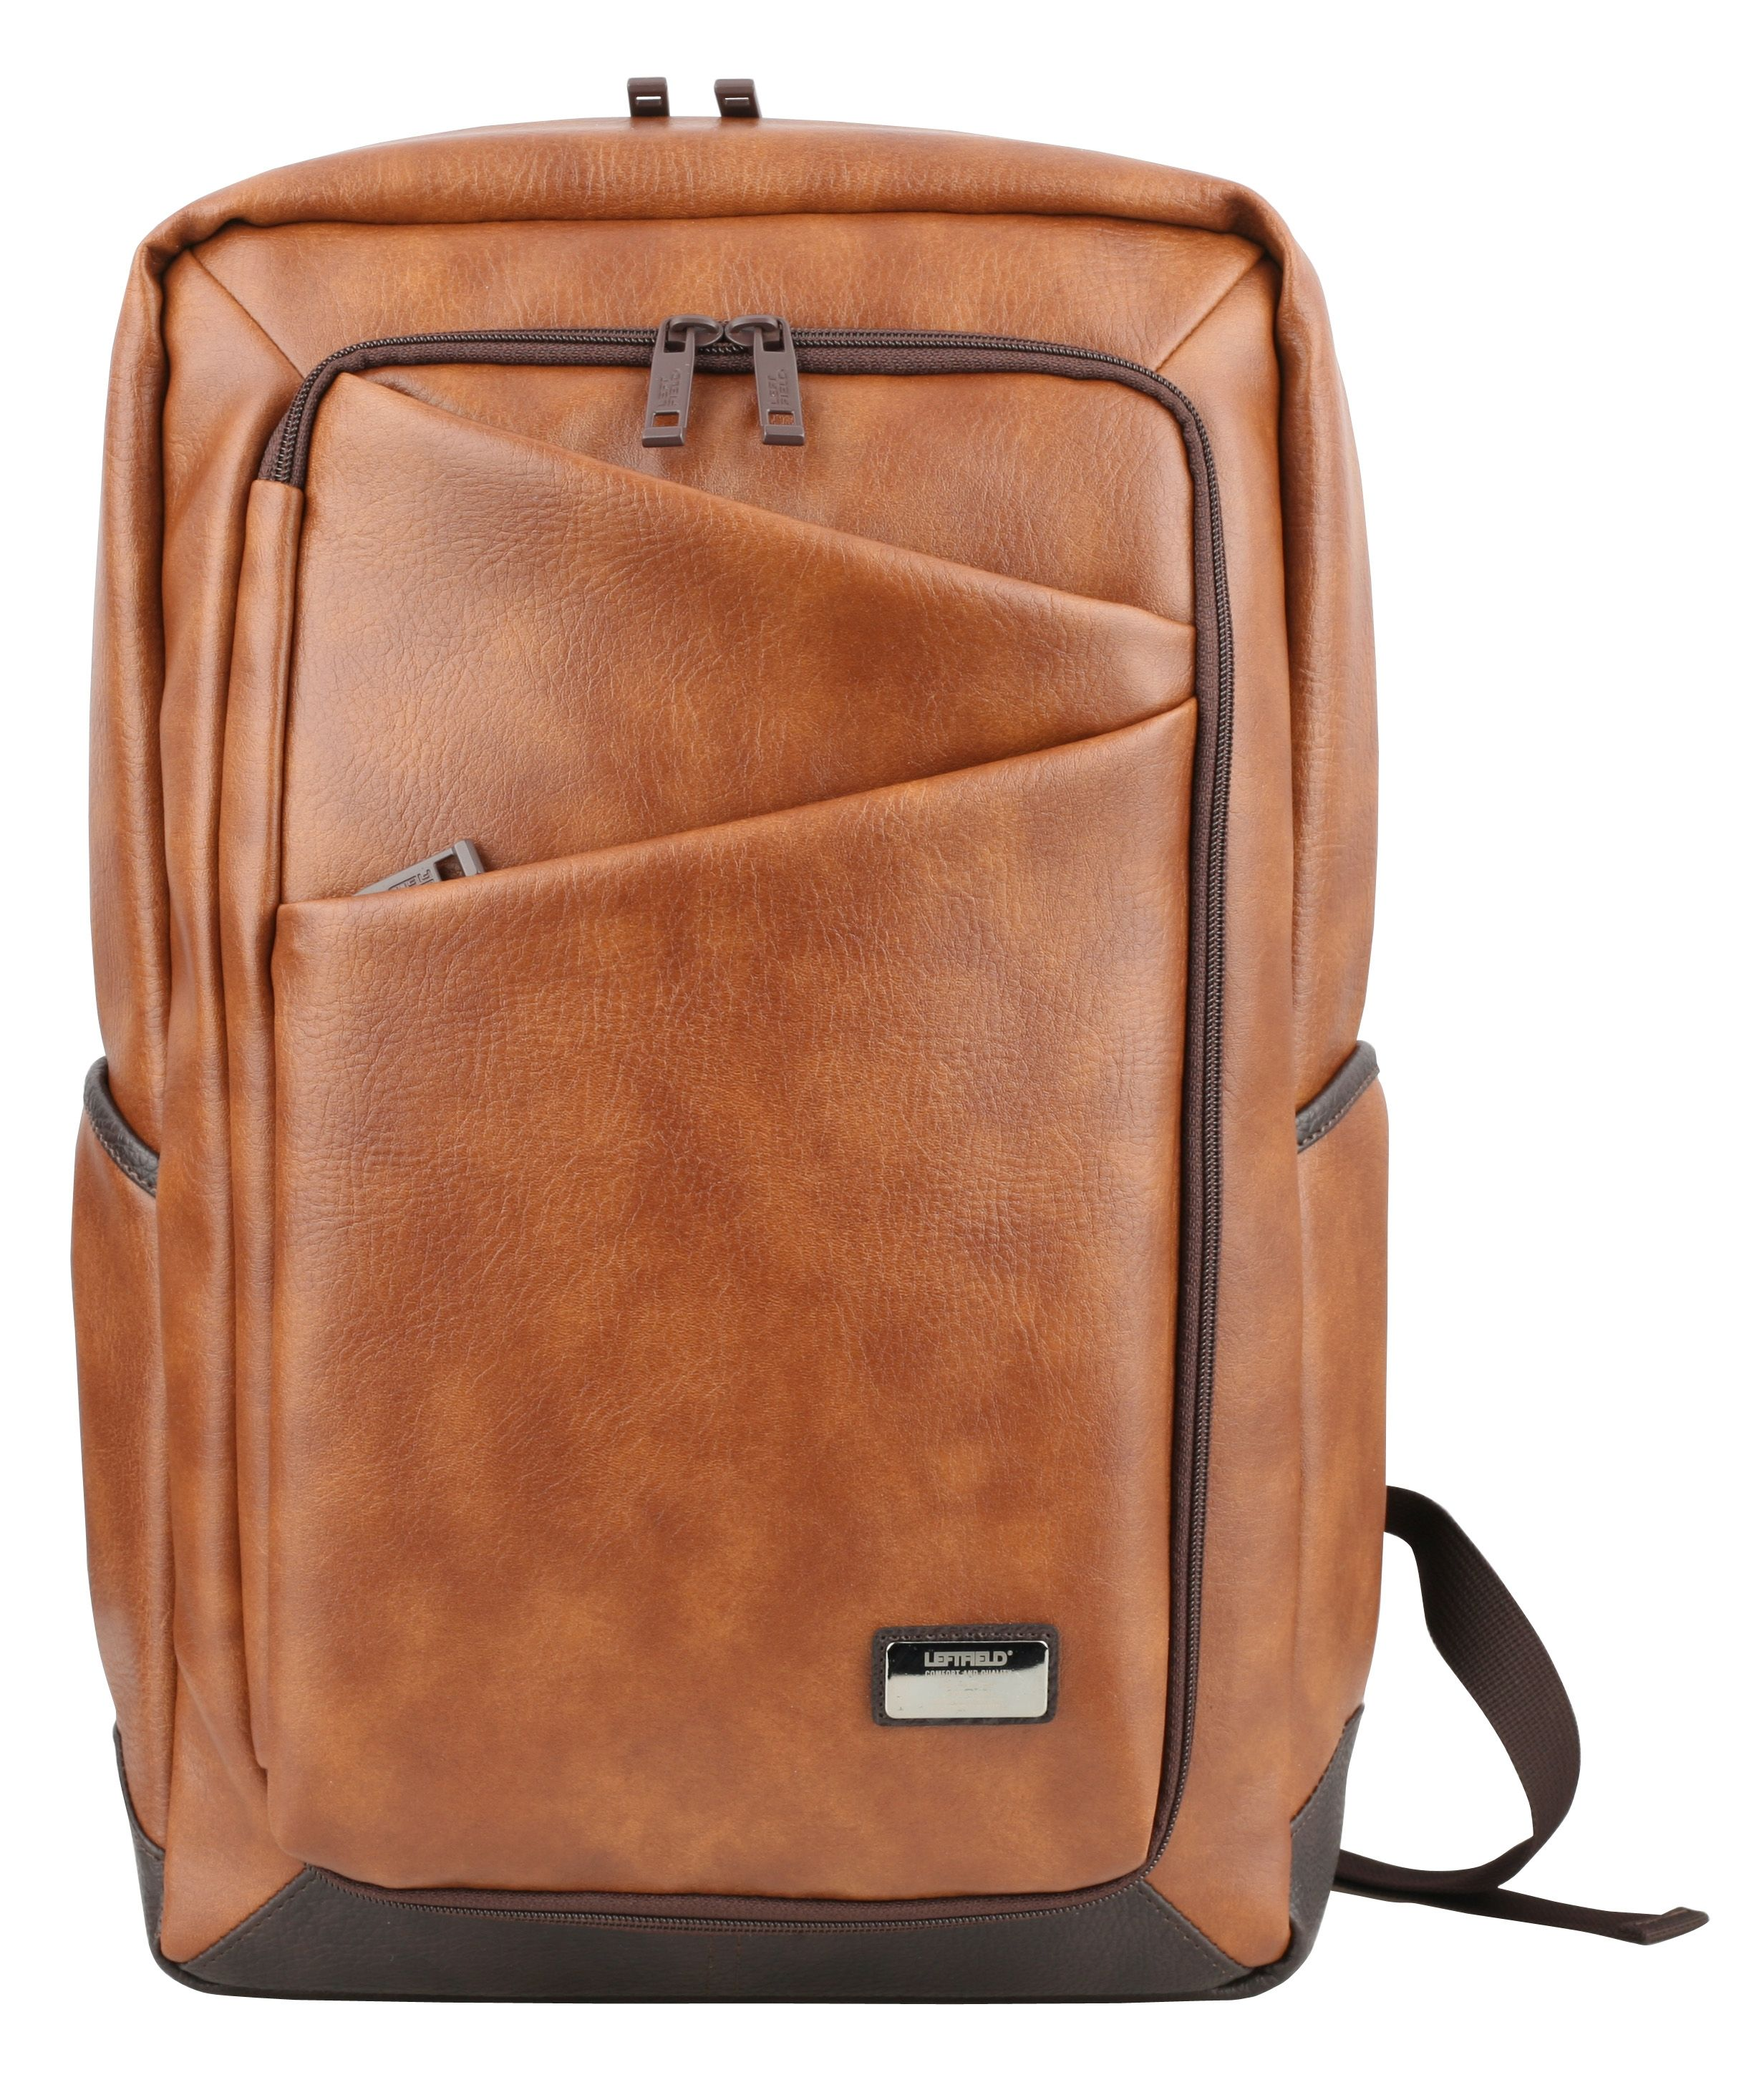 Korean fashion backpacks for men. Vintage style faux leather daypacks for  school 7b0d20a20c534